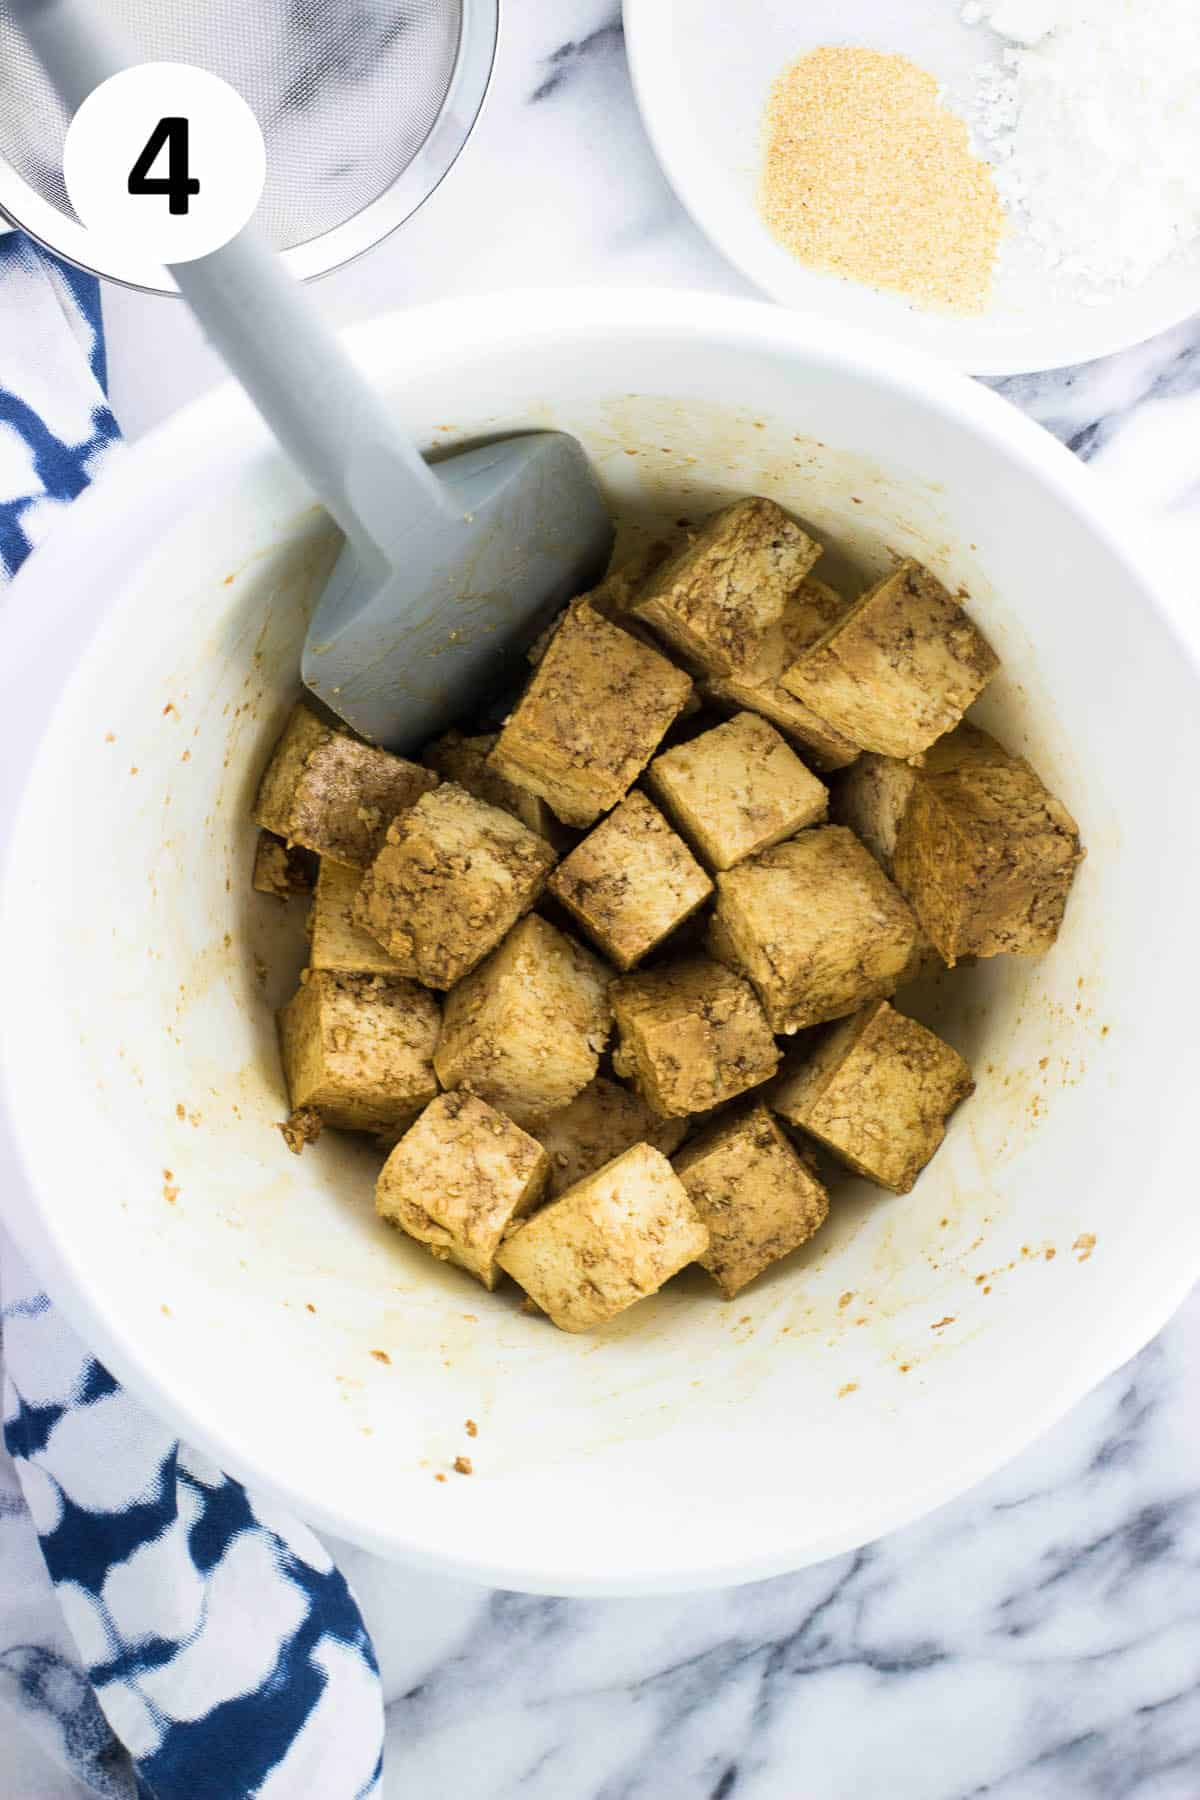 A spatula in a bowl after stirring the tofu.